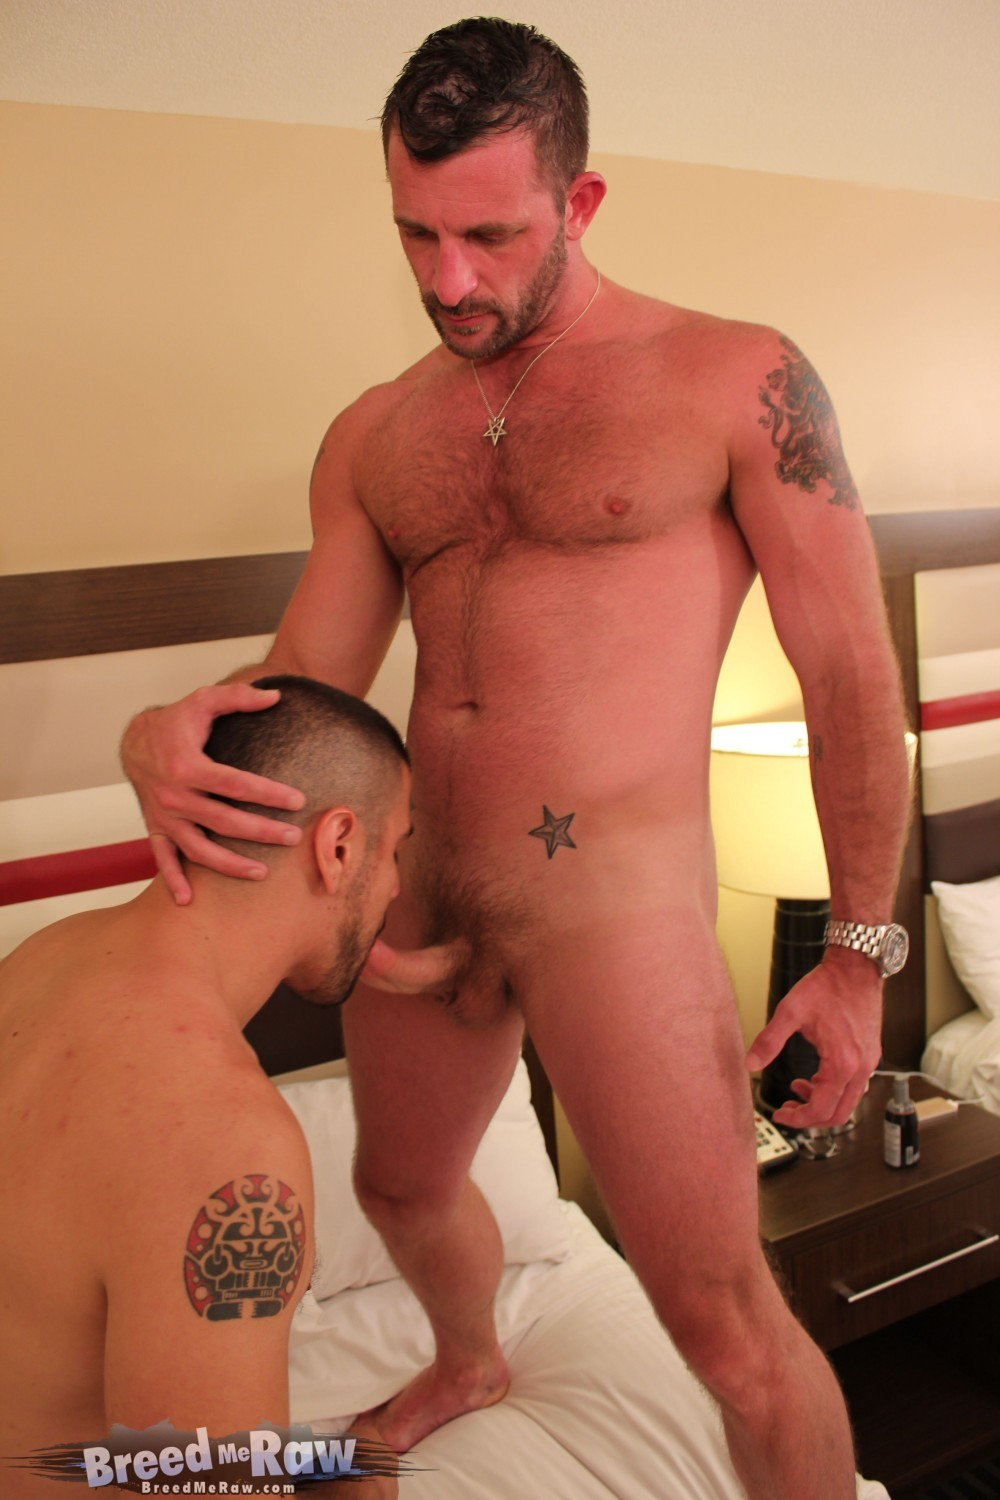 Breed Me Raw Morgan Black and Dominic Sol bareback 04 Breed Me Raw: Morgan Black and Dominic Sol